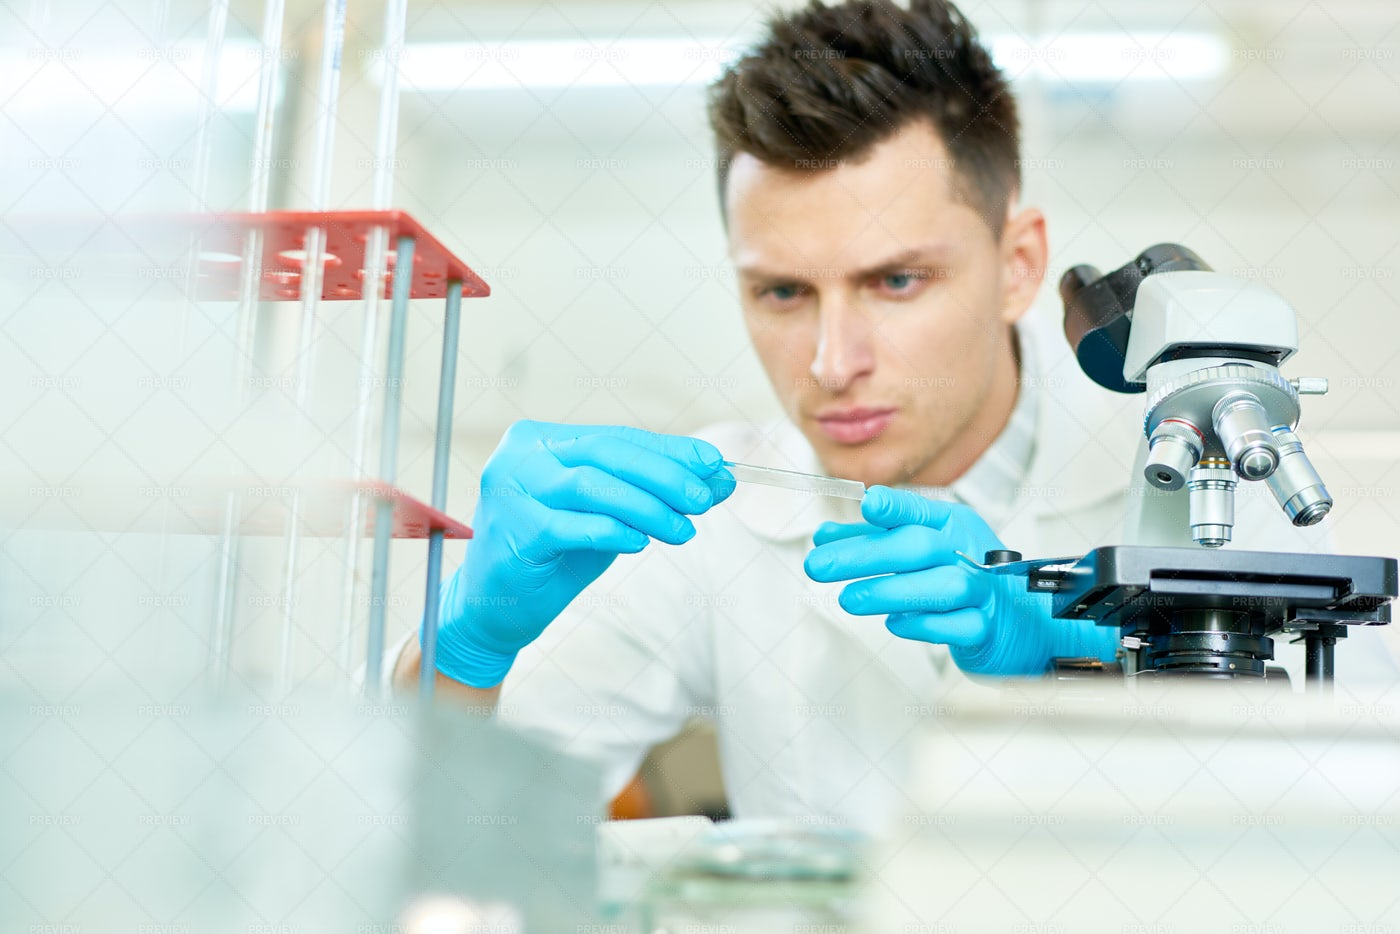 Concentrated Researcher Wrapped Up...: Stock Photos